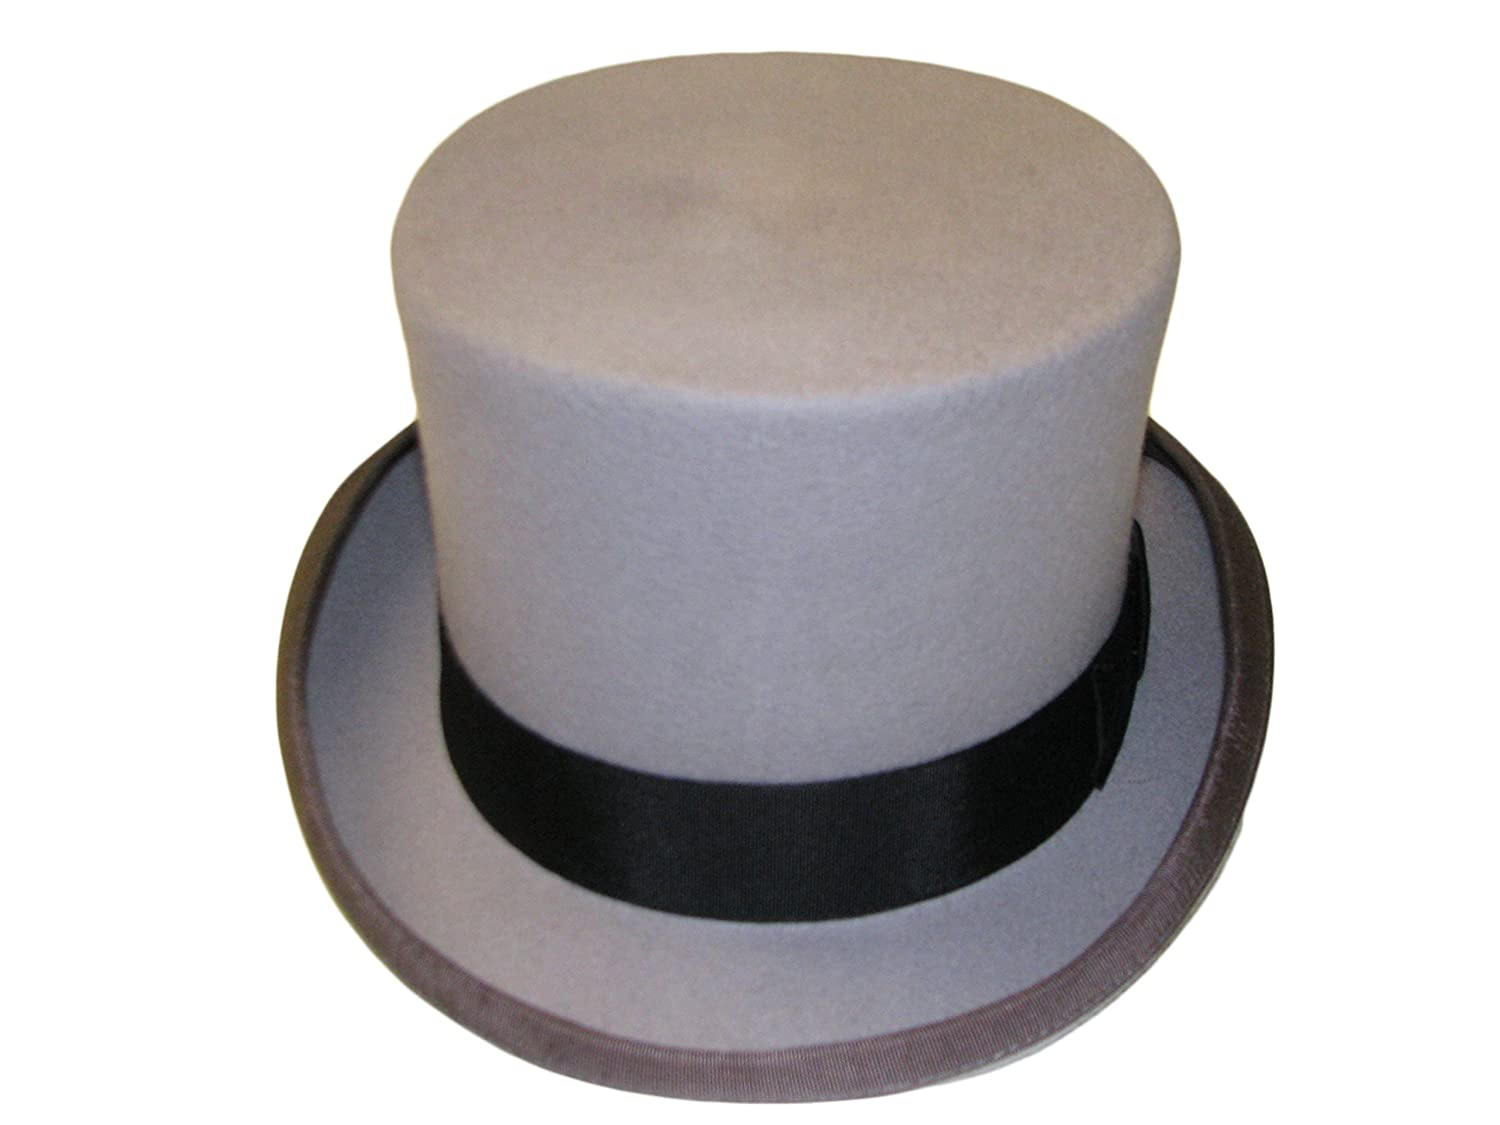 BOXED - HIGH QUALITY 100/% WOOL TOP HAT - SATIN LINED